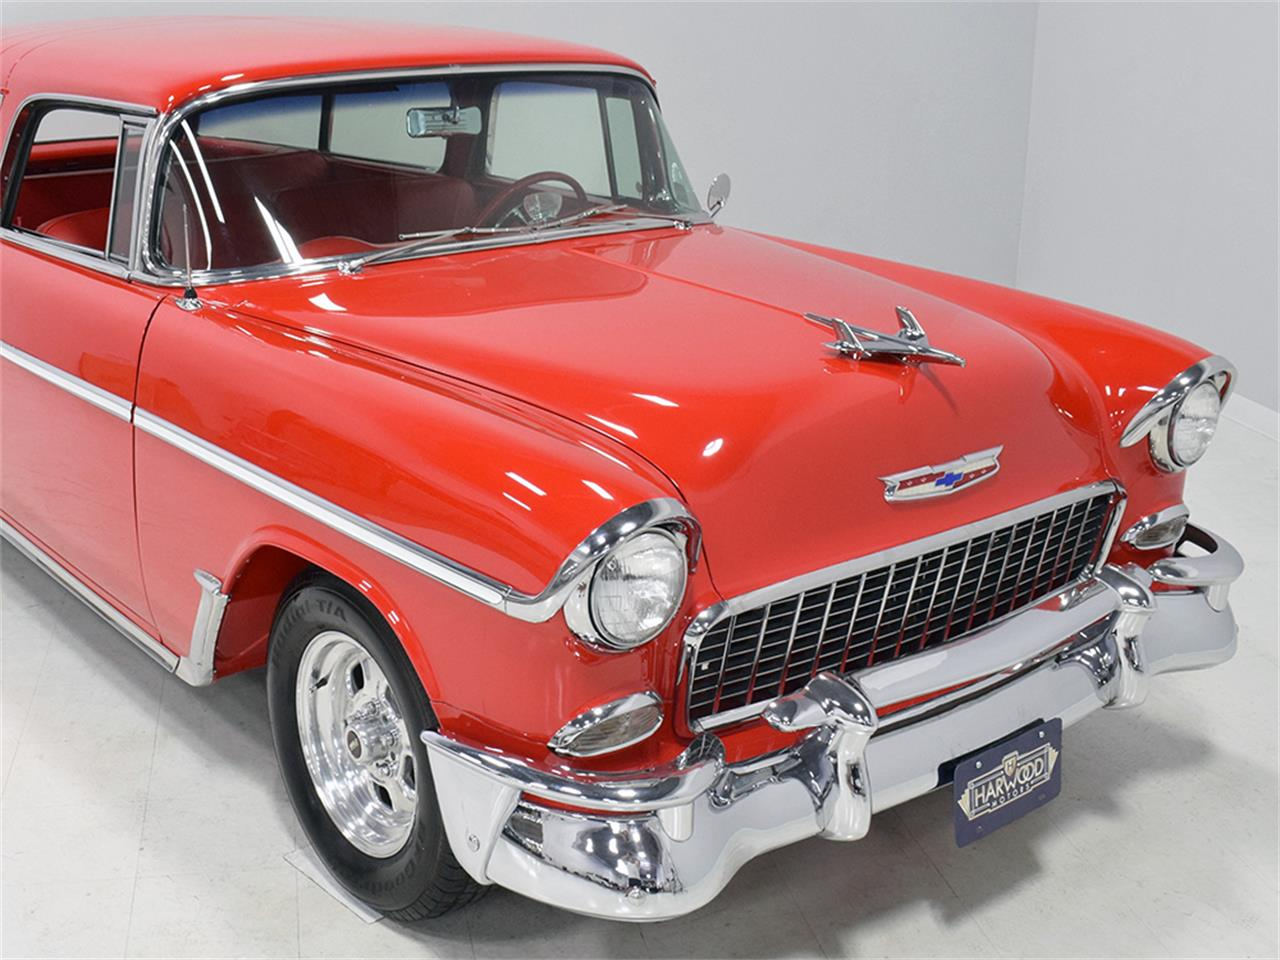 Large Picture of Classic '55 Nomad located in Macedonia Ohio - $69,900.00 Offered by Harwood Motors, LTD. - O8YP